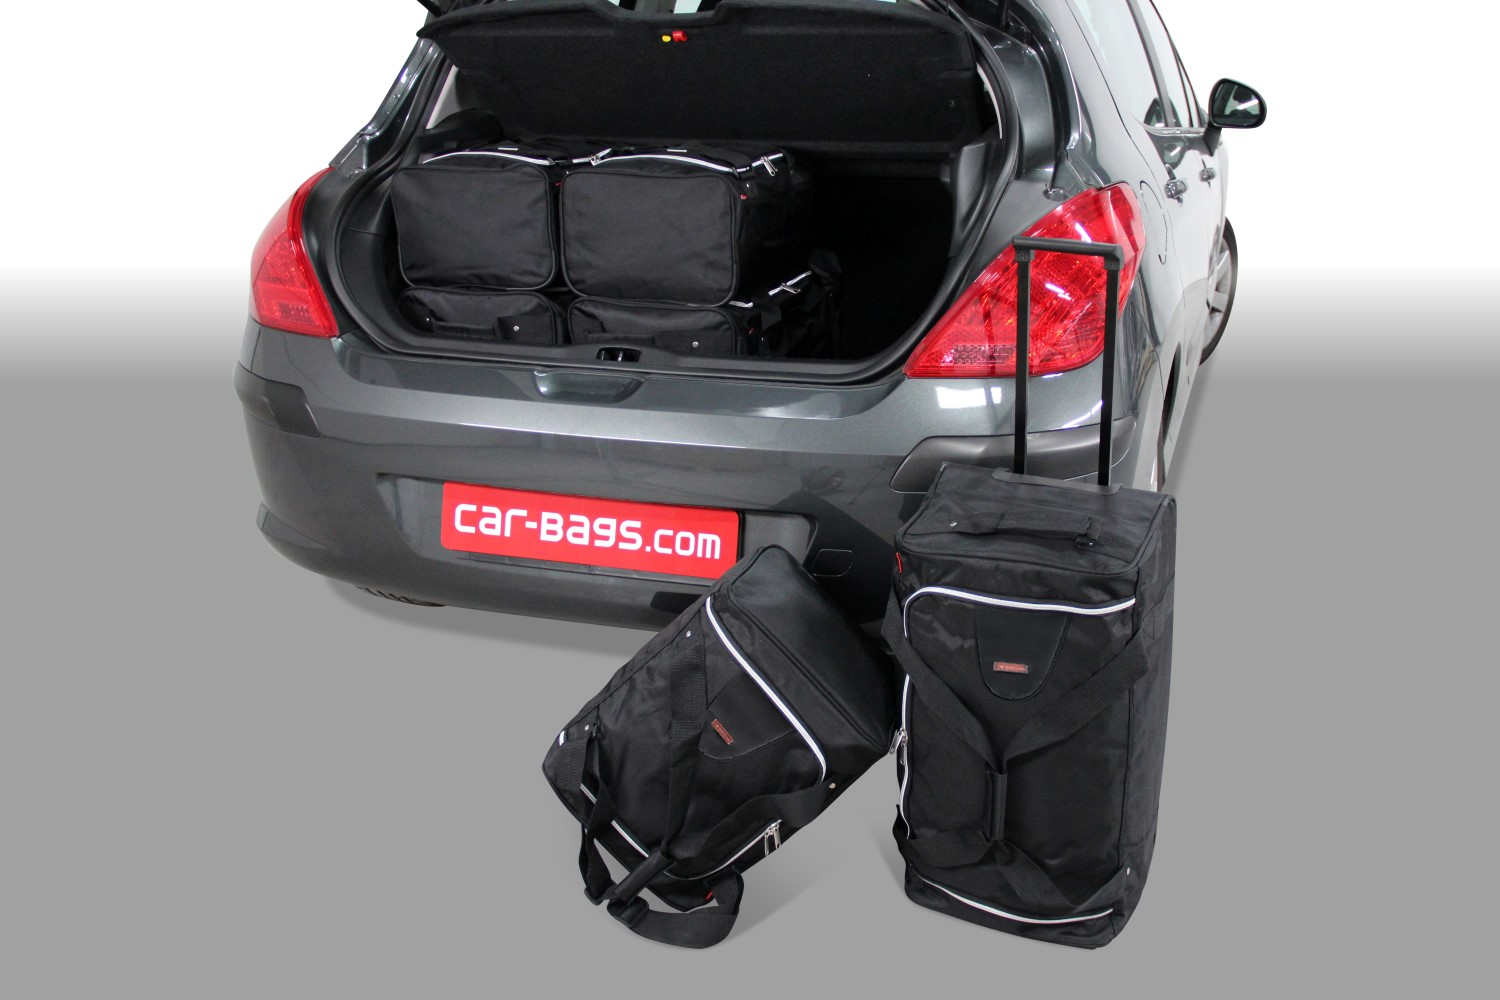 Peugeot 308 I 2007-2013 3 & 5 door Car-Bags.com travel bag set (1)